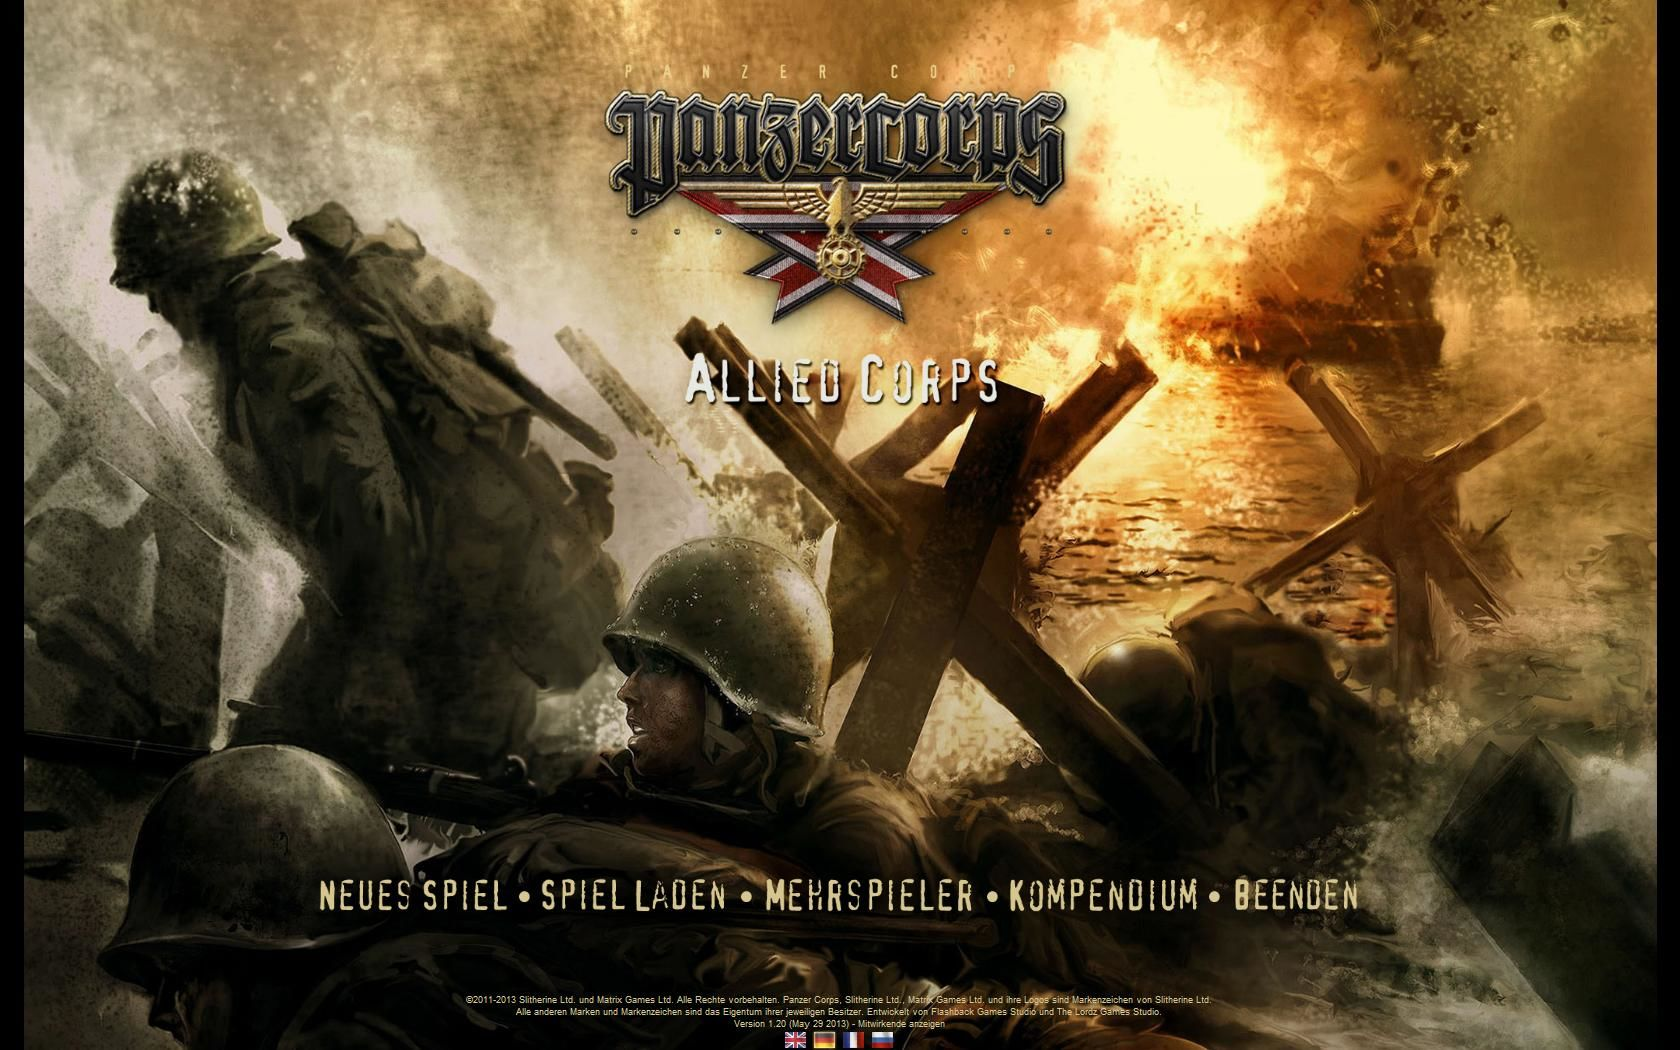 Panzer Corps: Allied Corps Windows Start screen